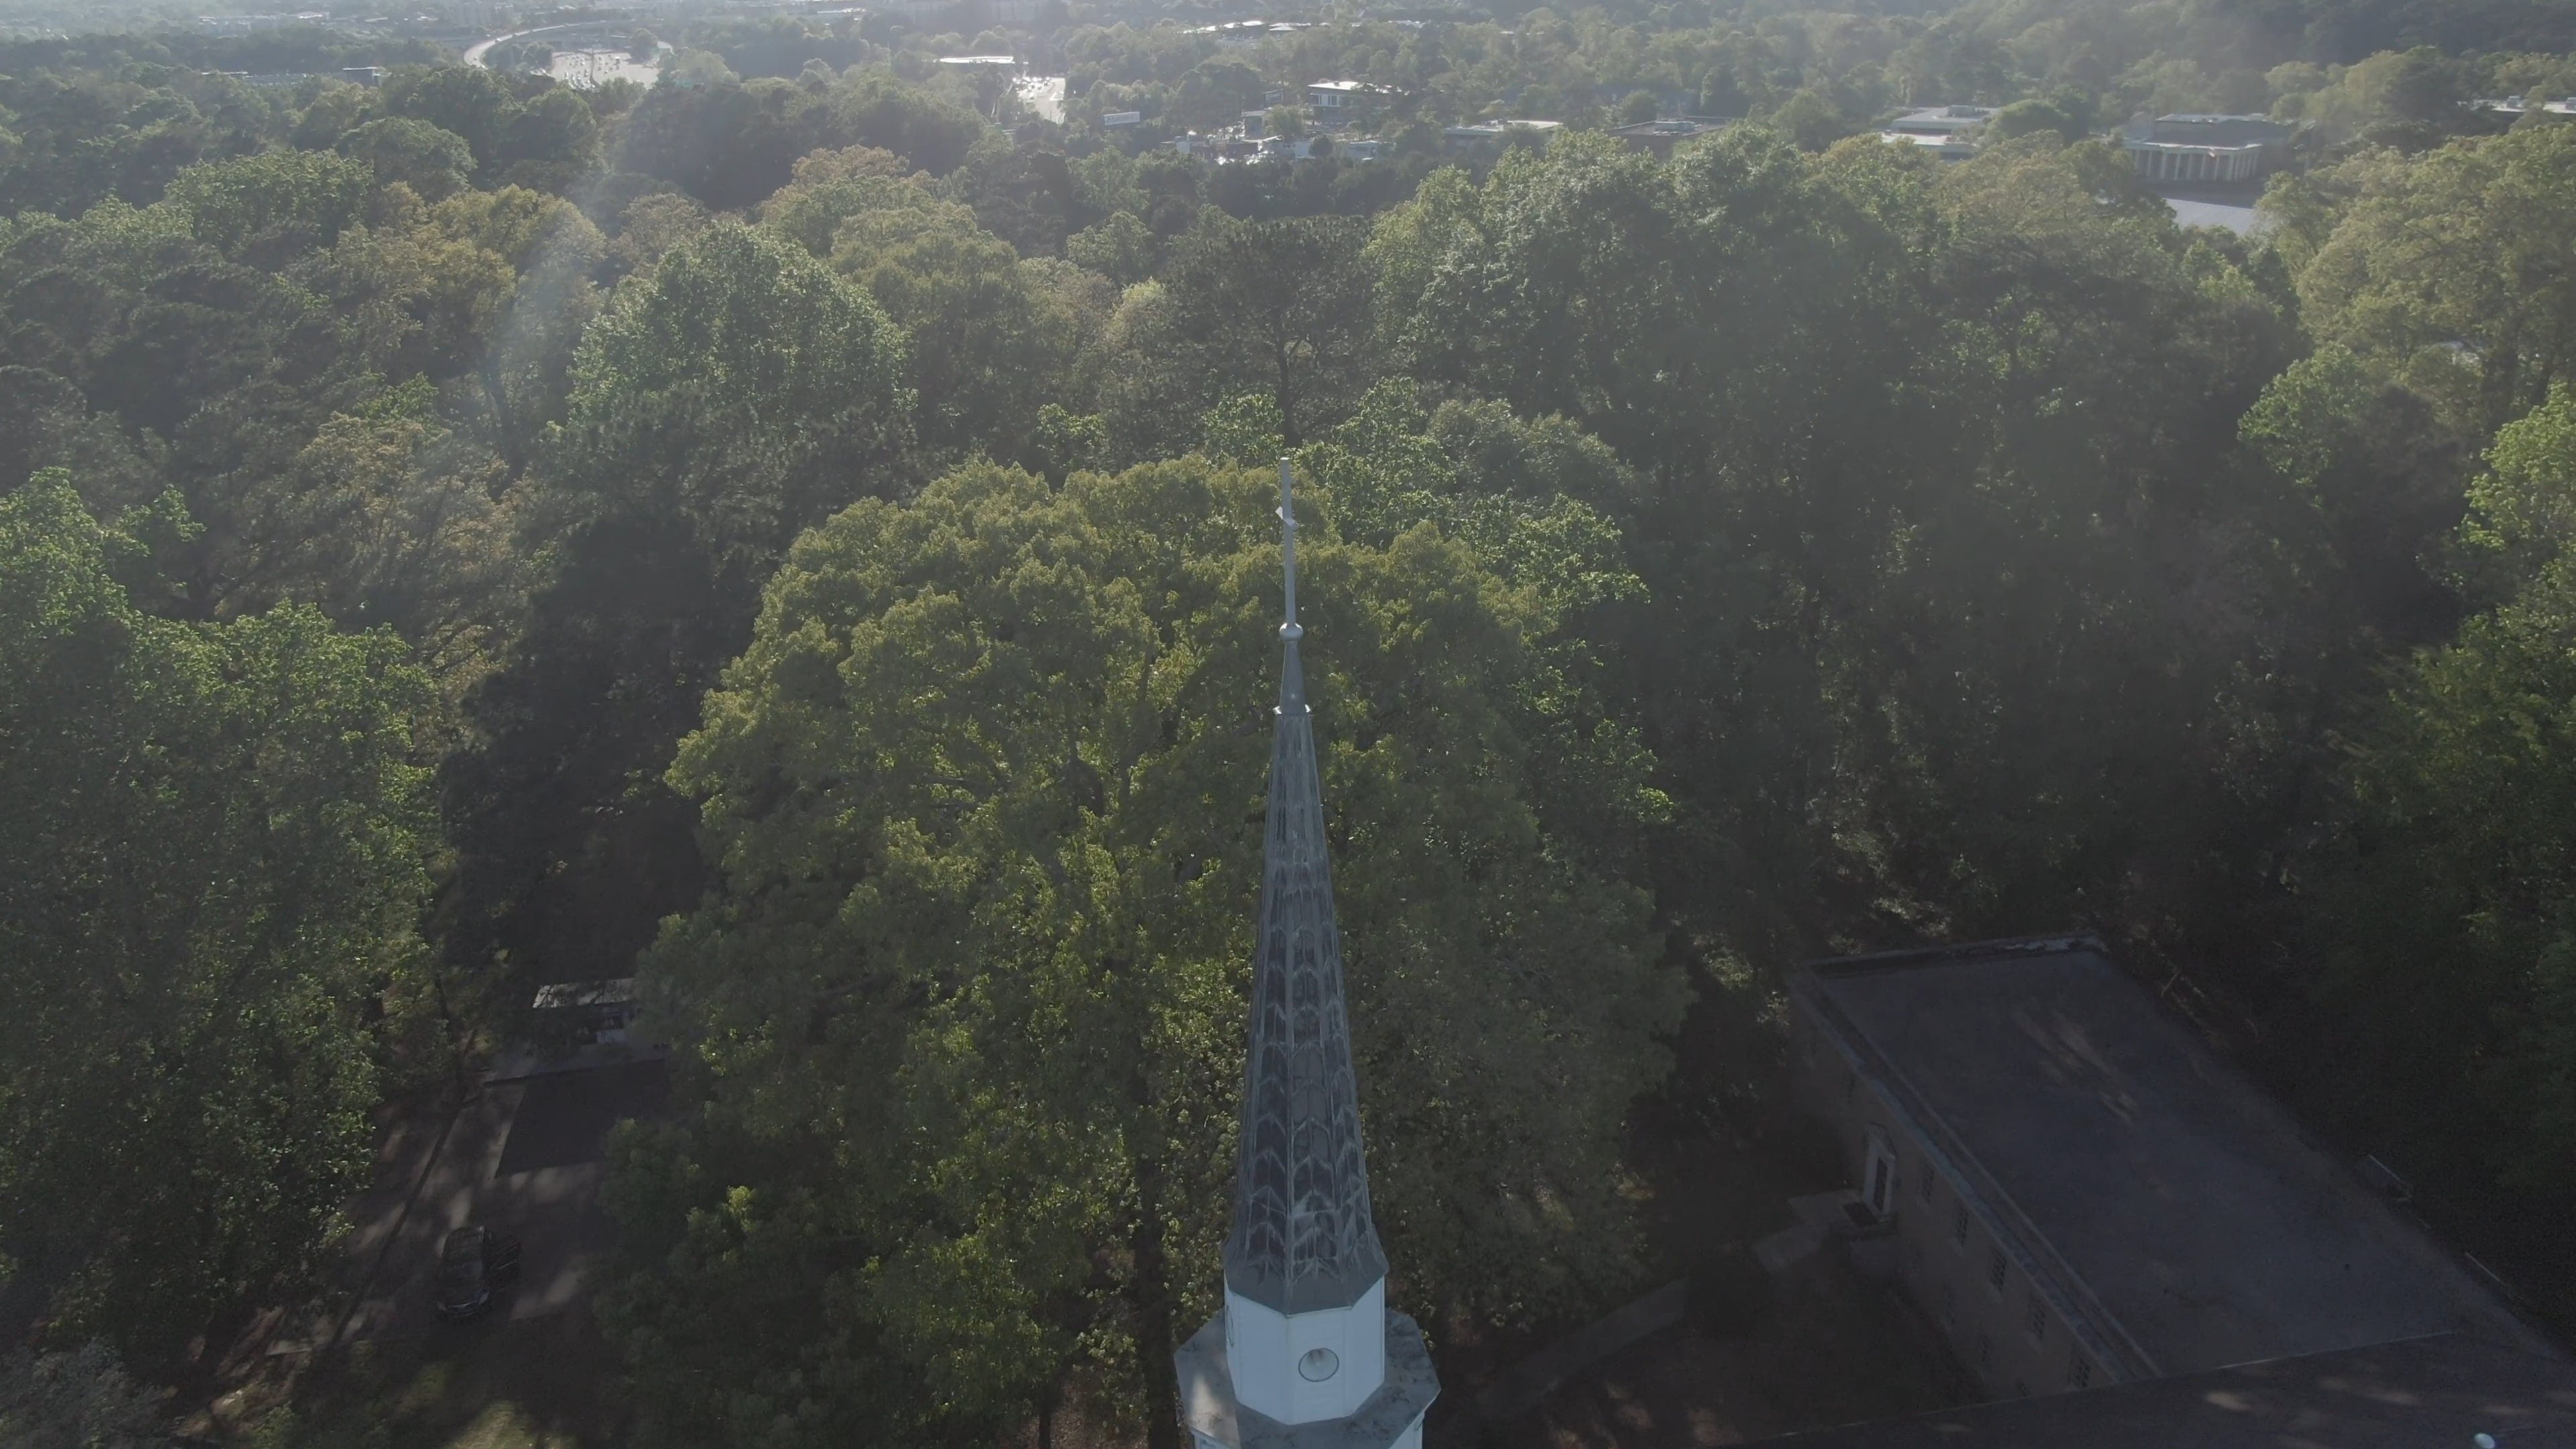 View Of Church Tower In The Middle Of Trees